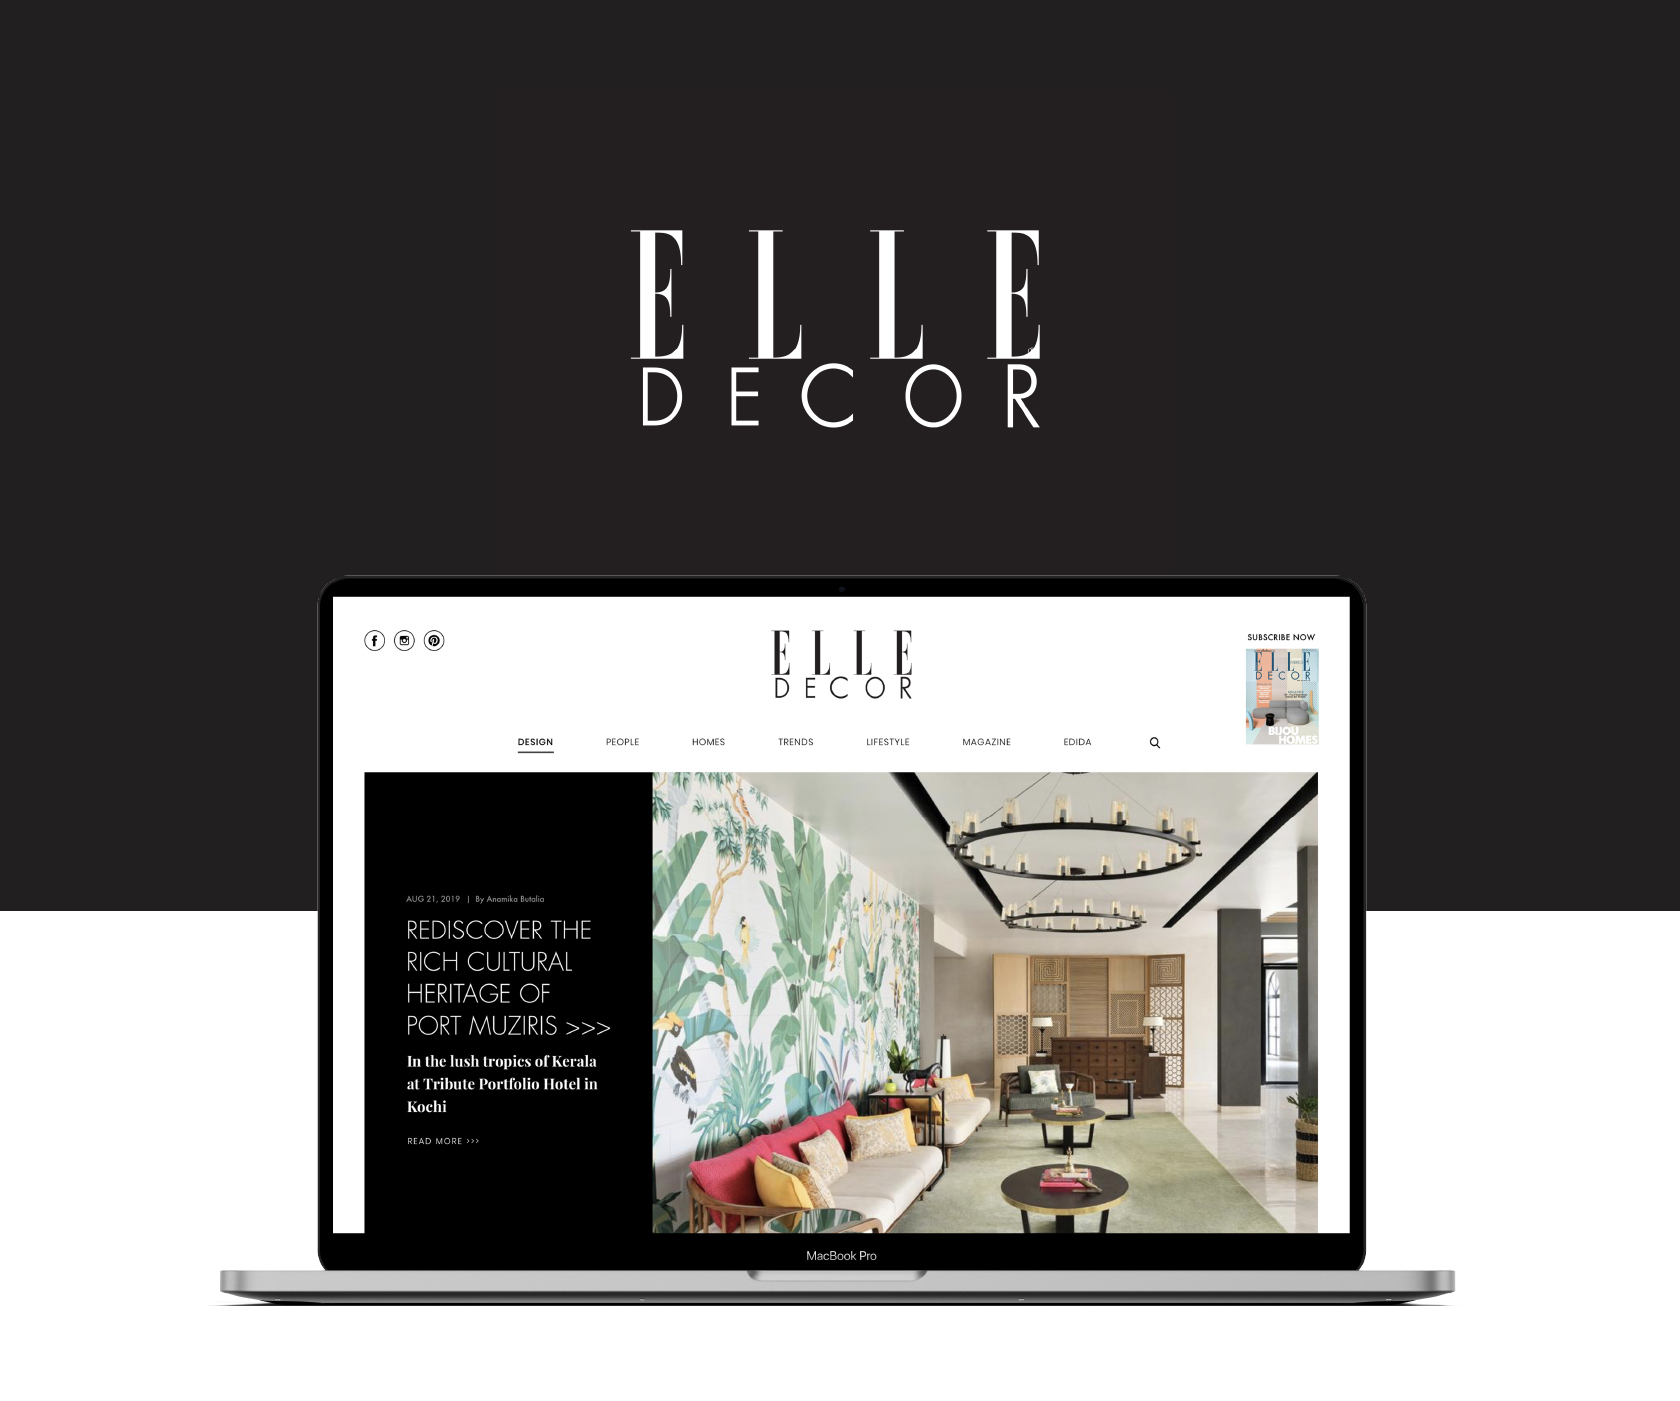 Elle-firstbanner